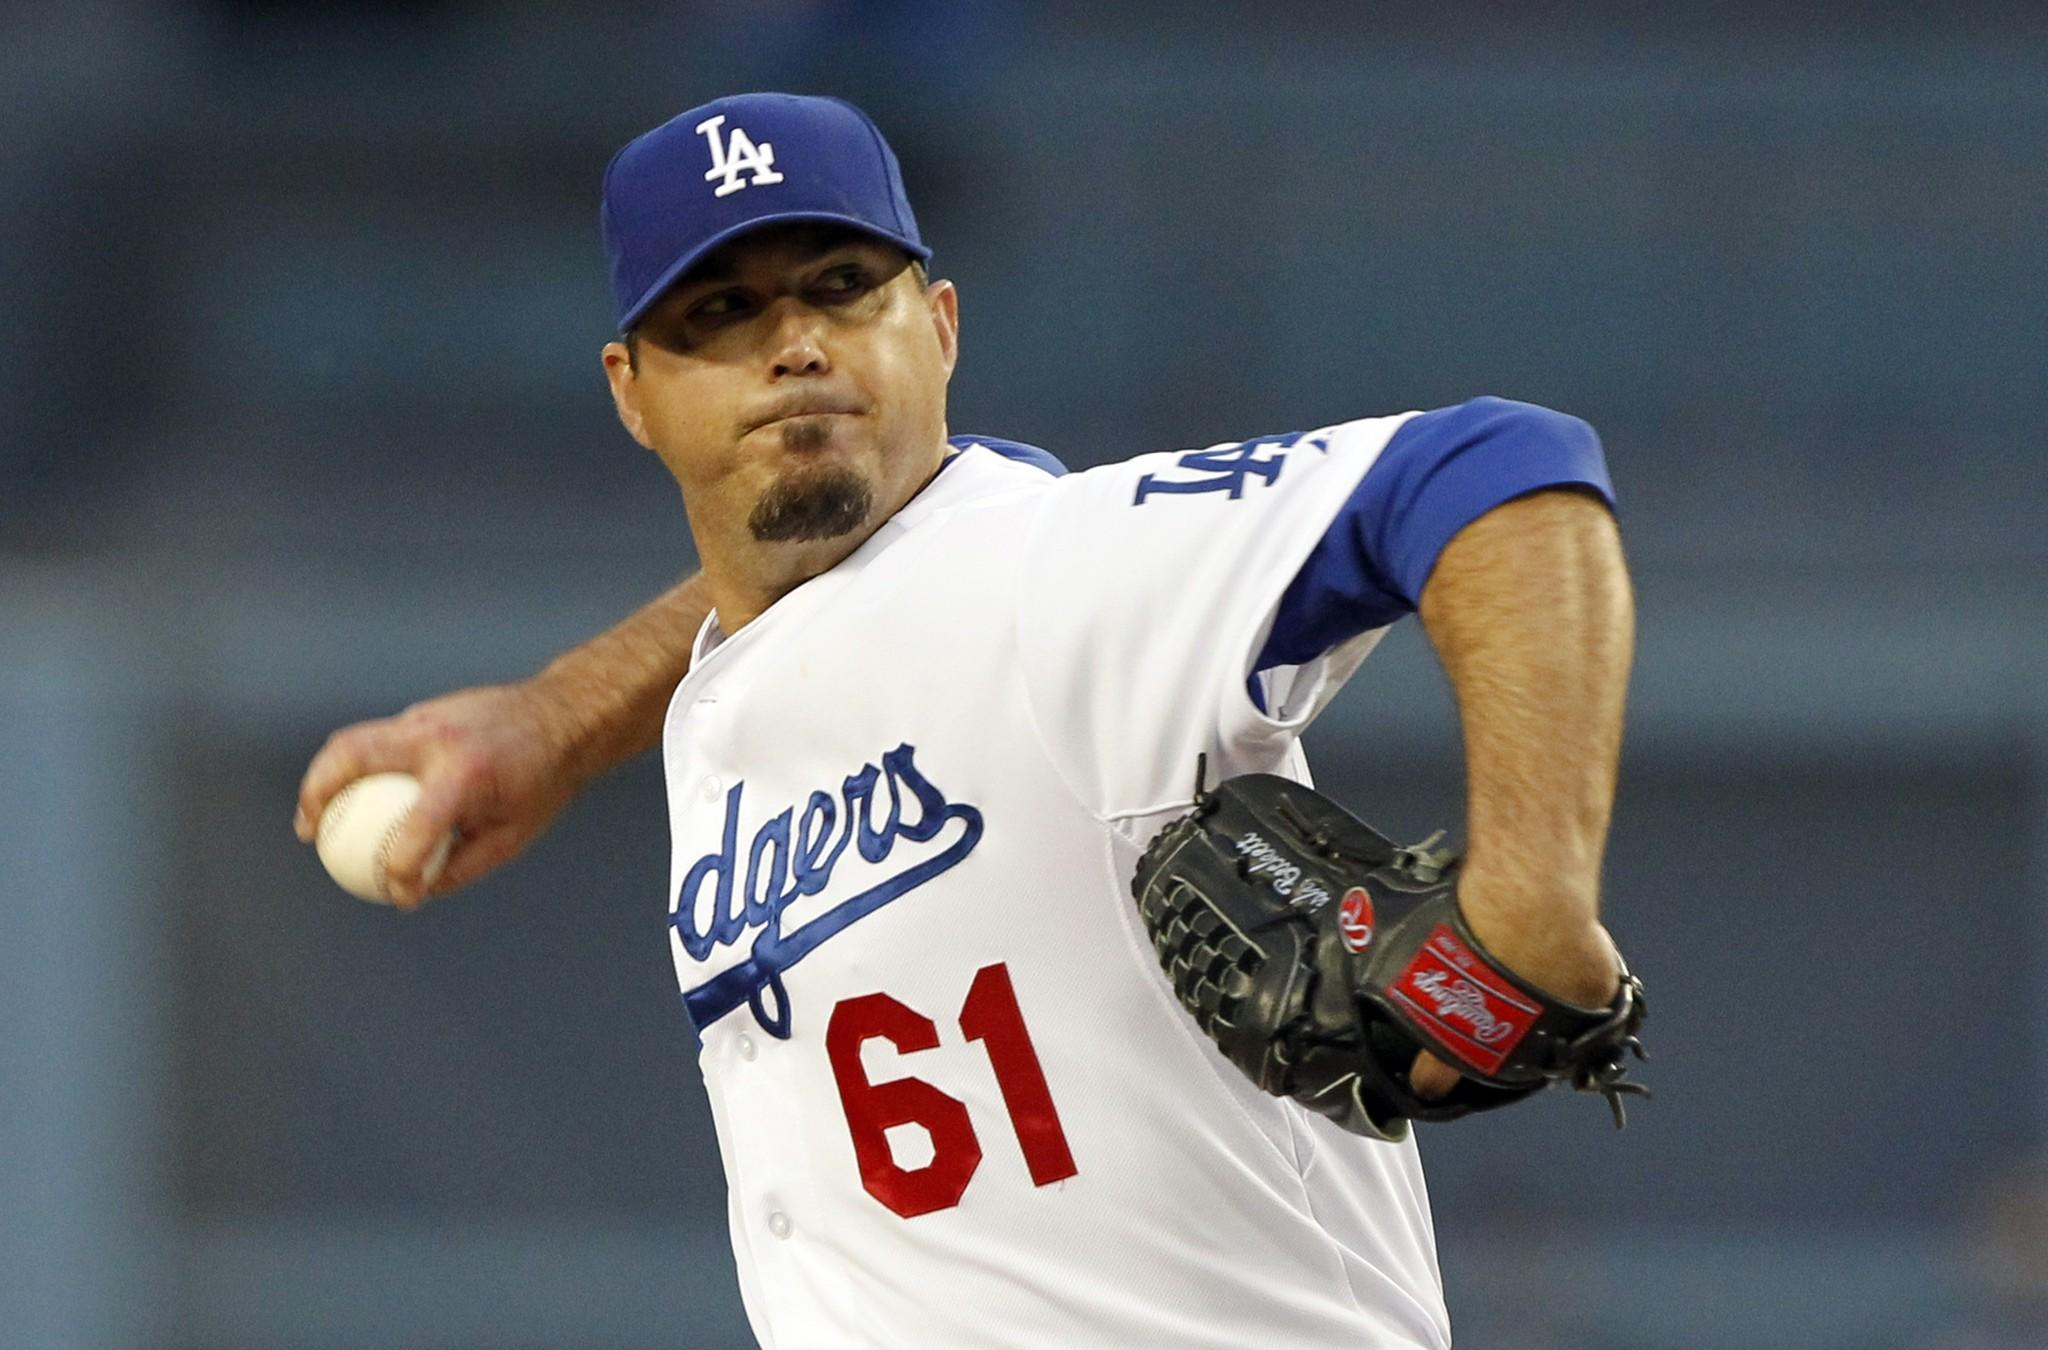 Josh Beckett gave up two earned runs on four hits over eight innings while striking out two batters against the Colorado Rockies on Friday at Dodger Stadium.